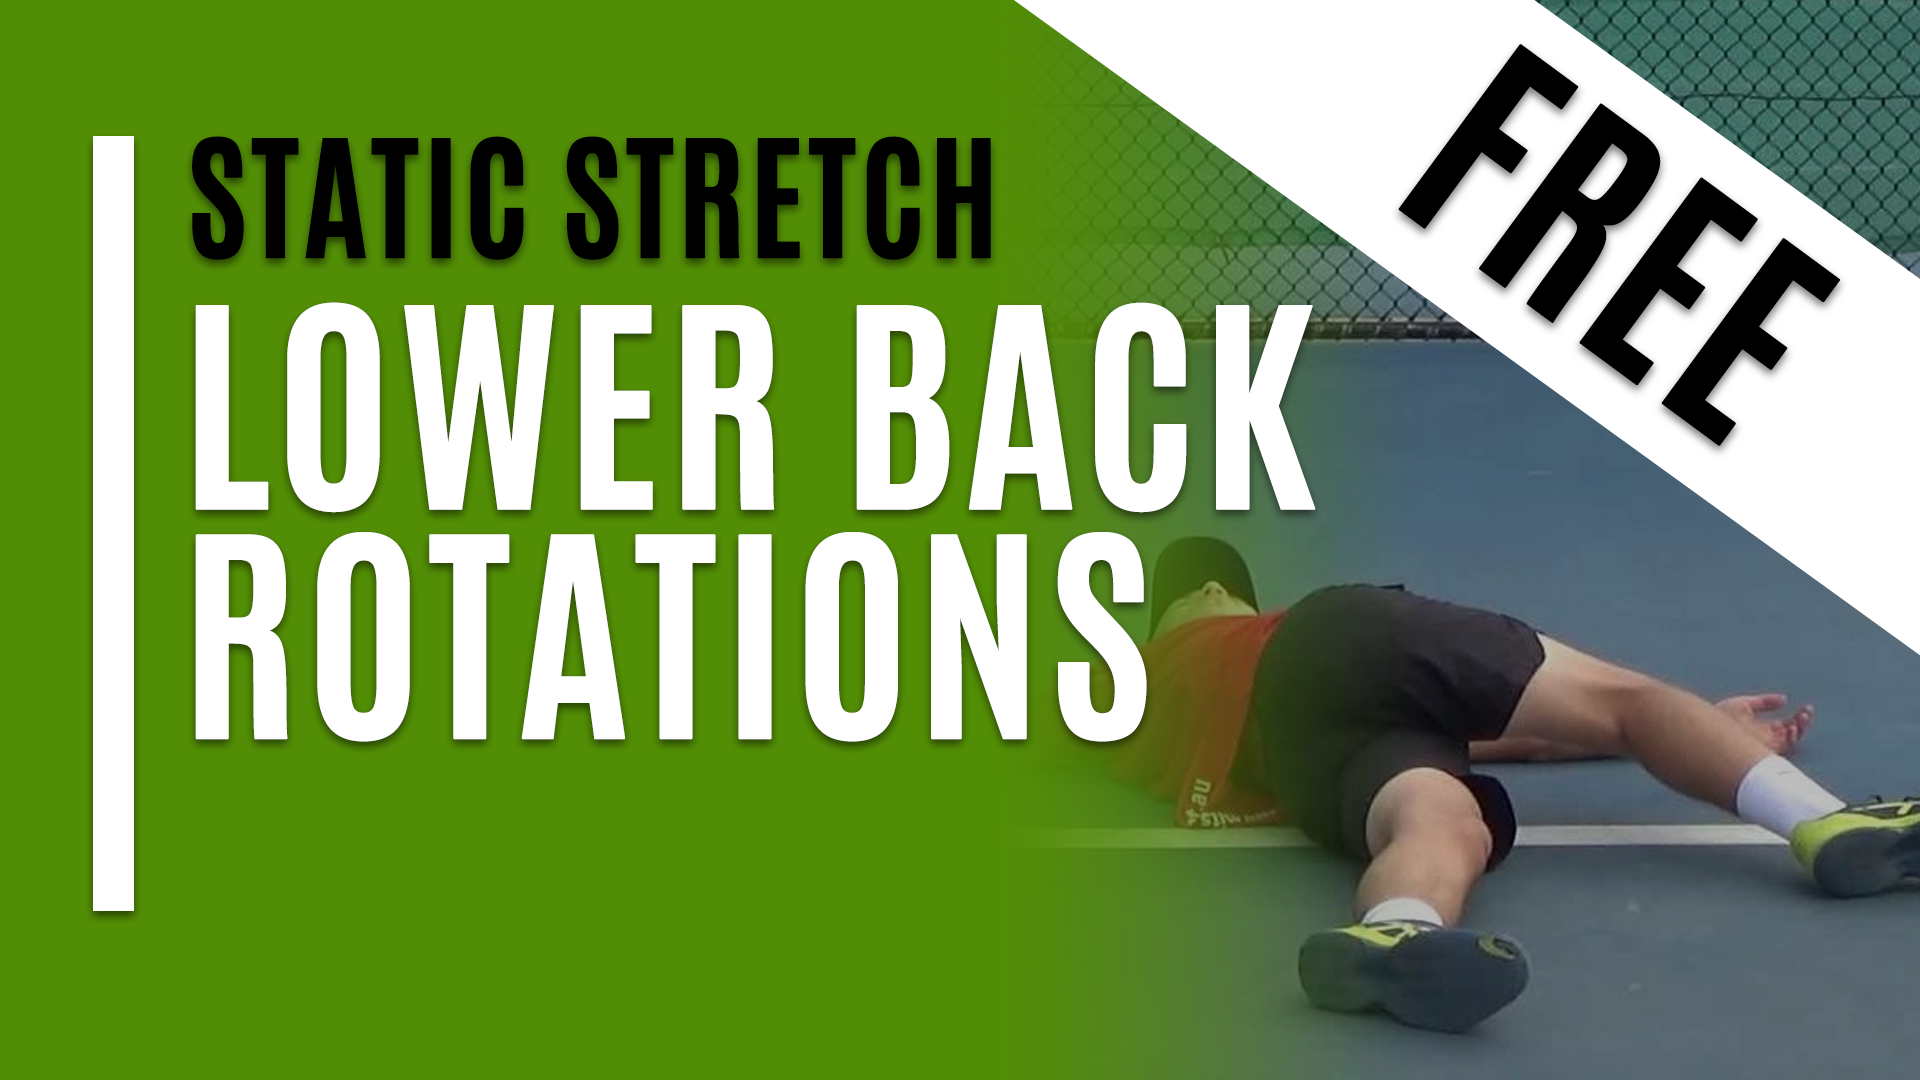 Lower Back Rotations